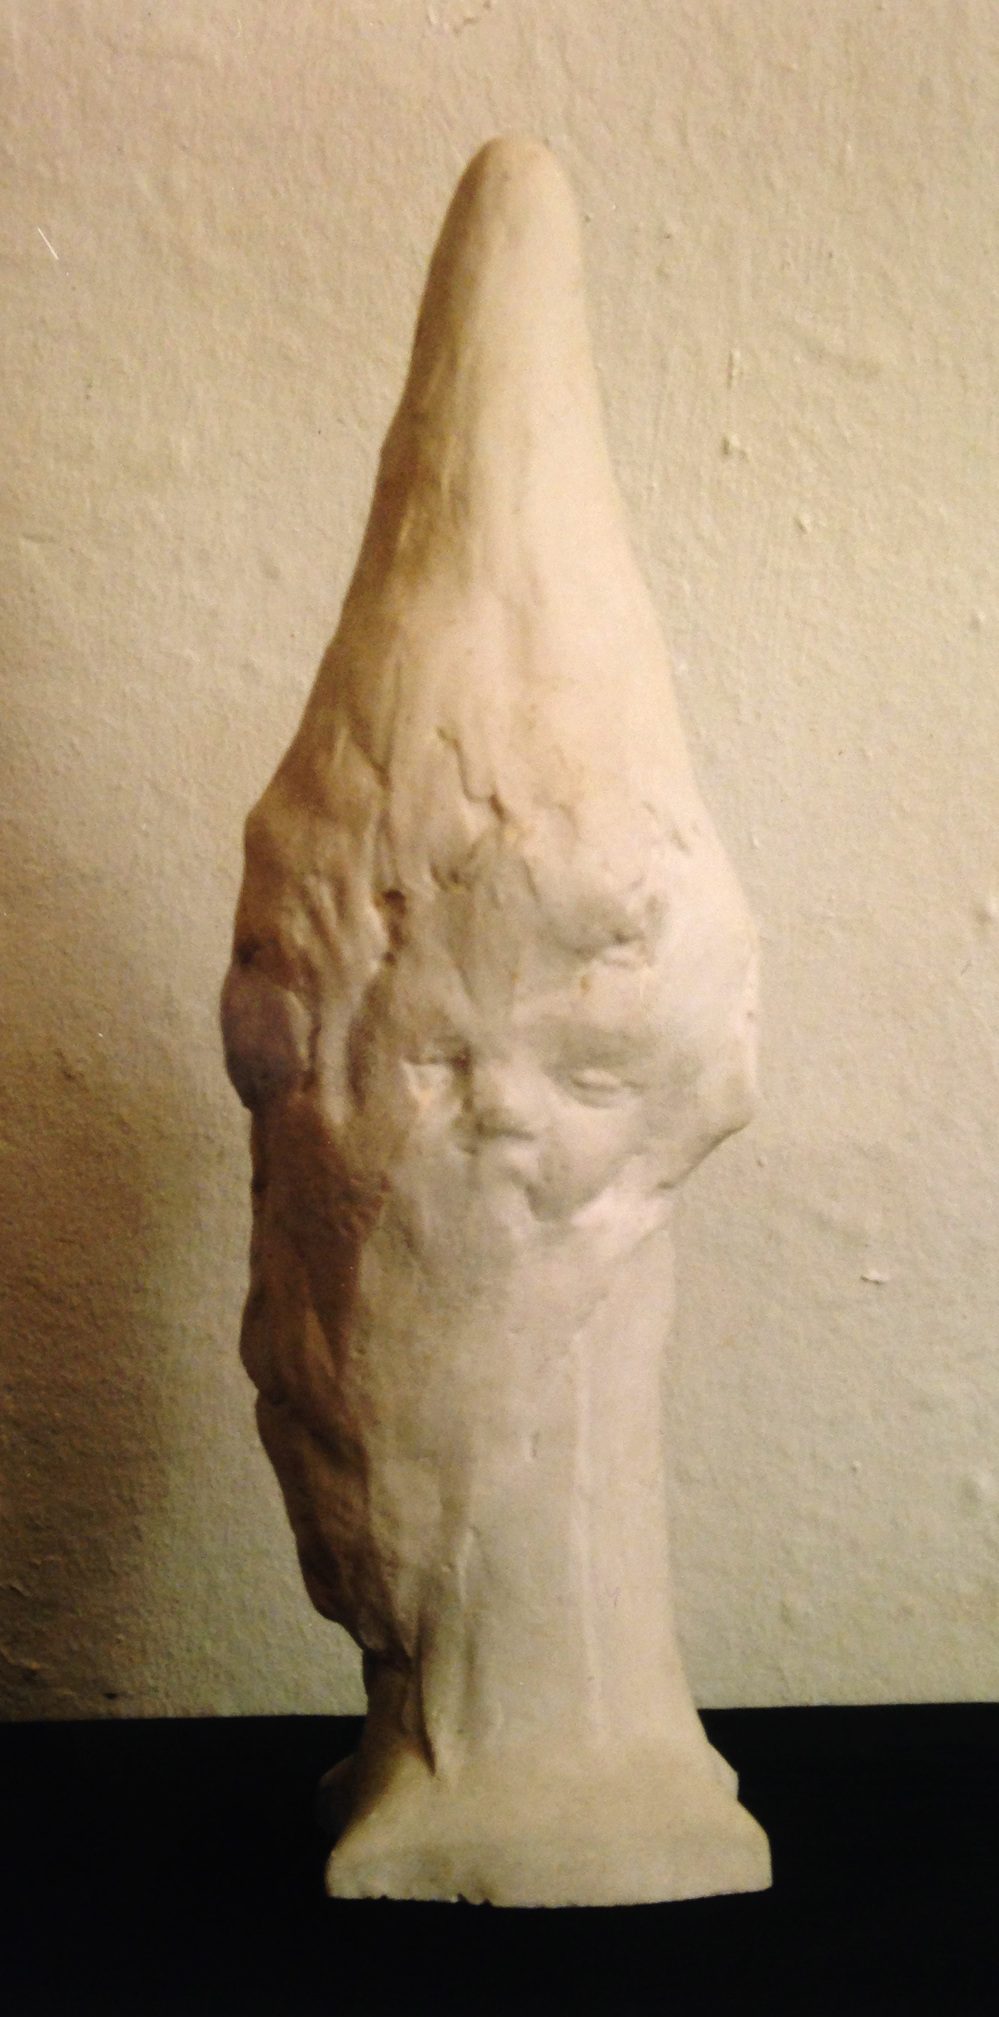 Dildos -1993 Little Boy (after Medaro Rosso)